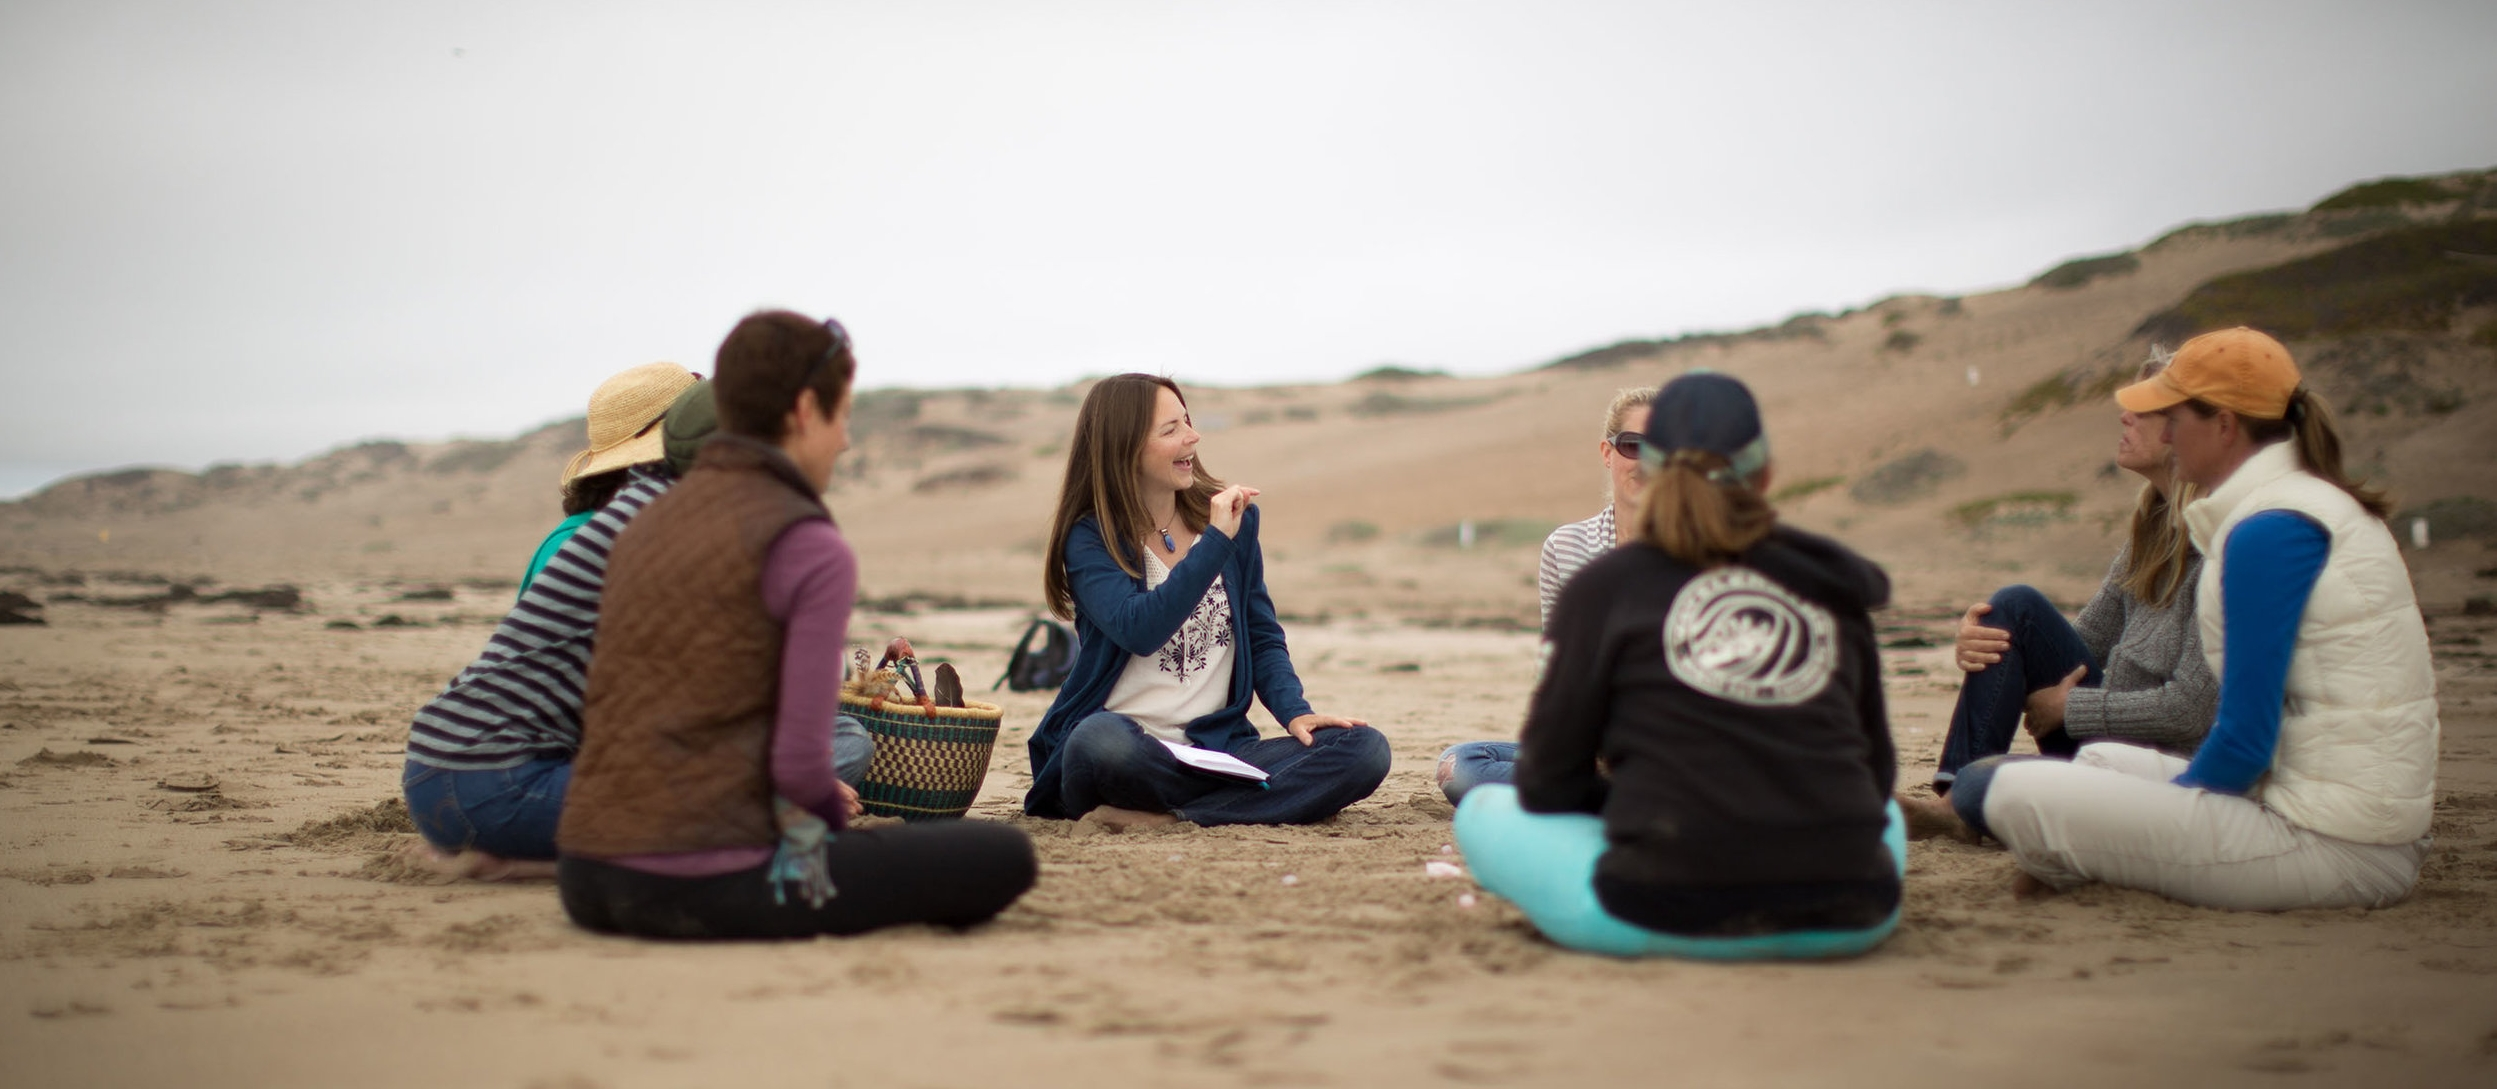 Sage-Mothering-beach-women's-circle.jpg